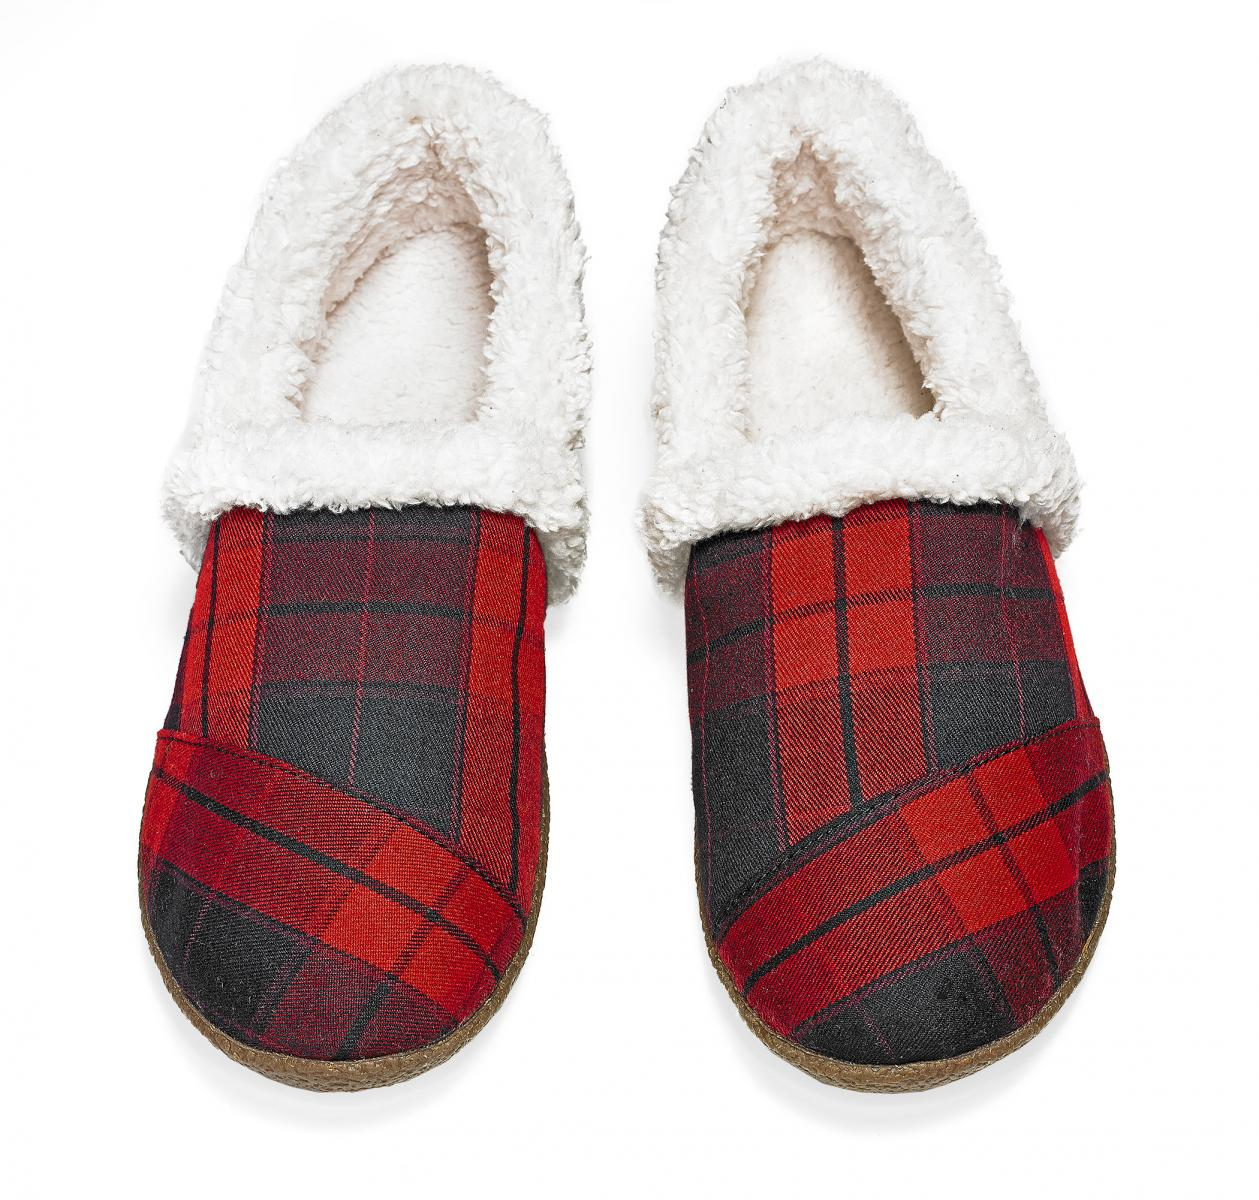 Charitable Giving Cozy Slippers